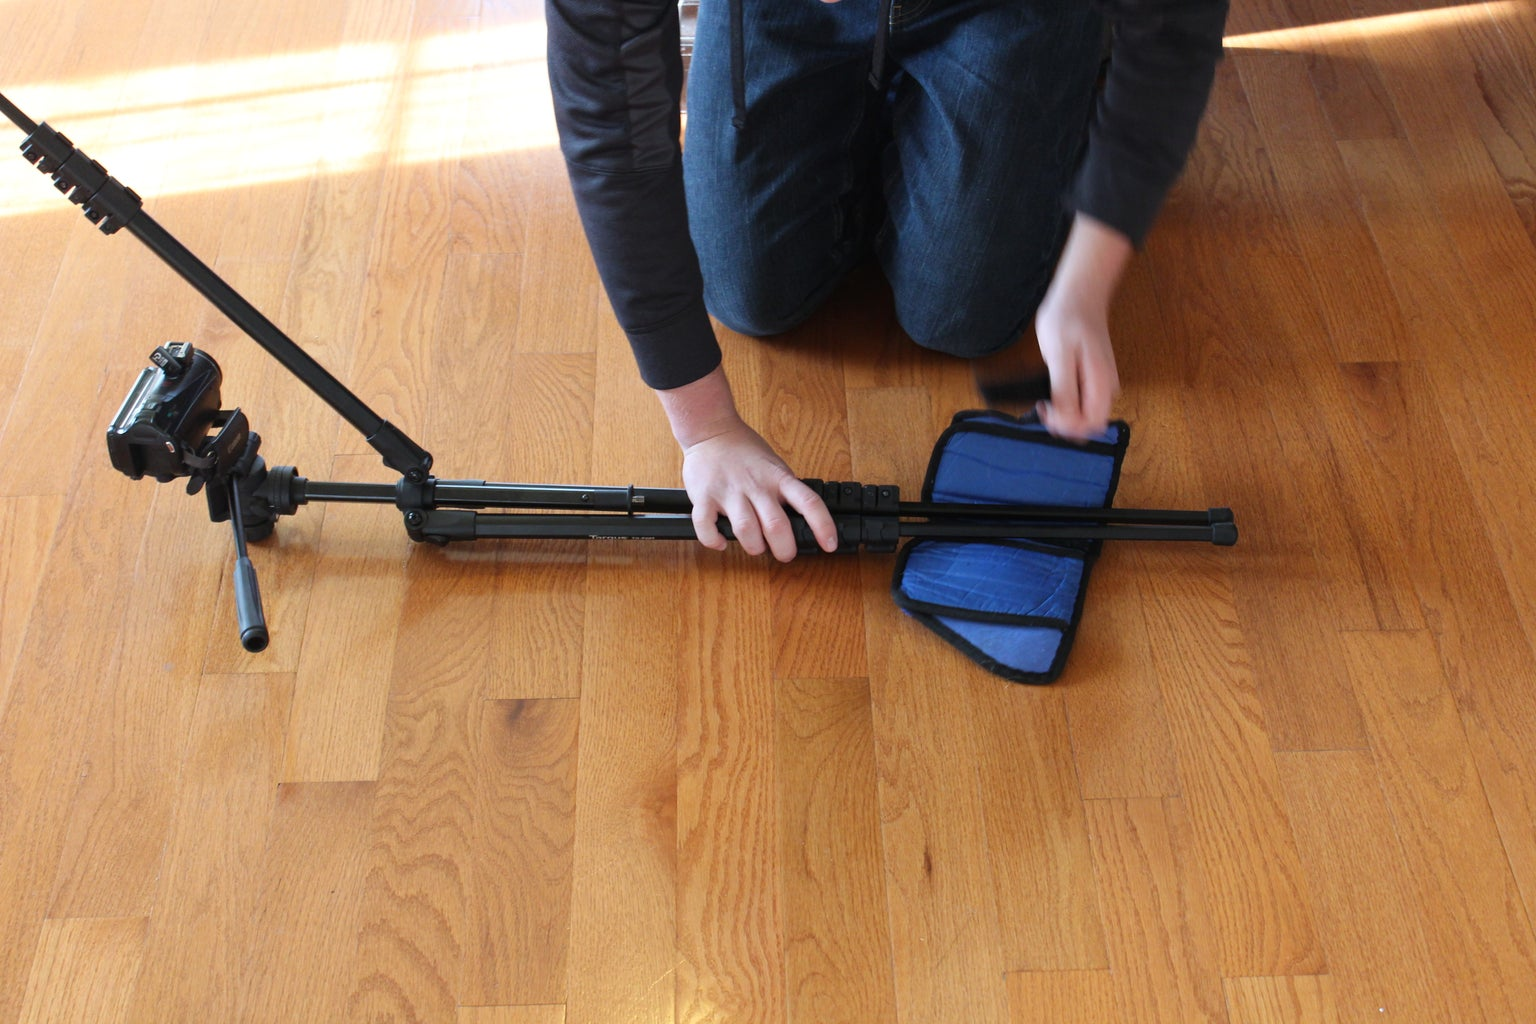 Pull One of the Tripod Legs Up As Shown.  Add Counter Balance Weights to the Other Two Legs